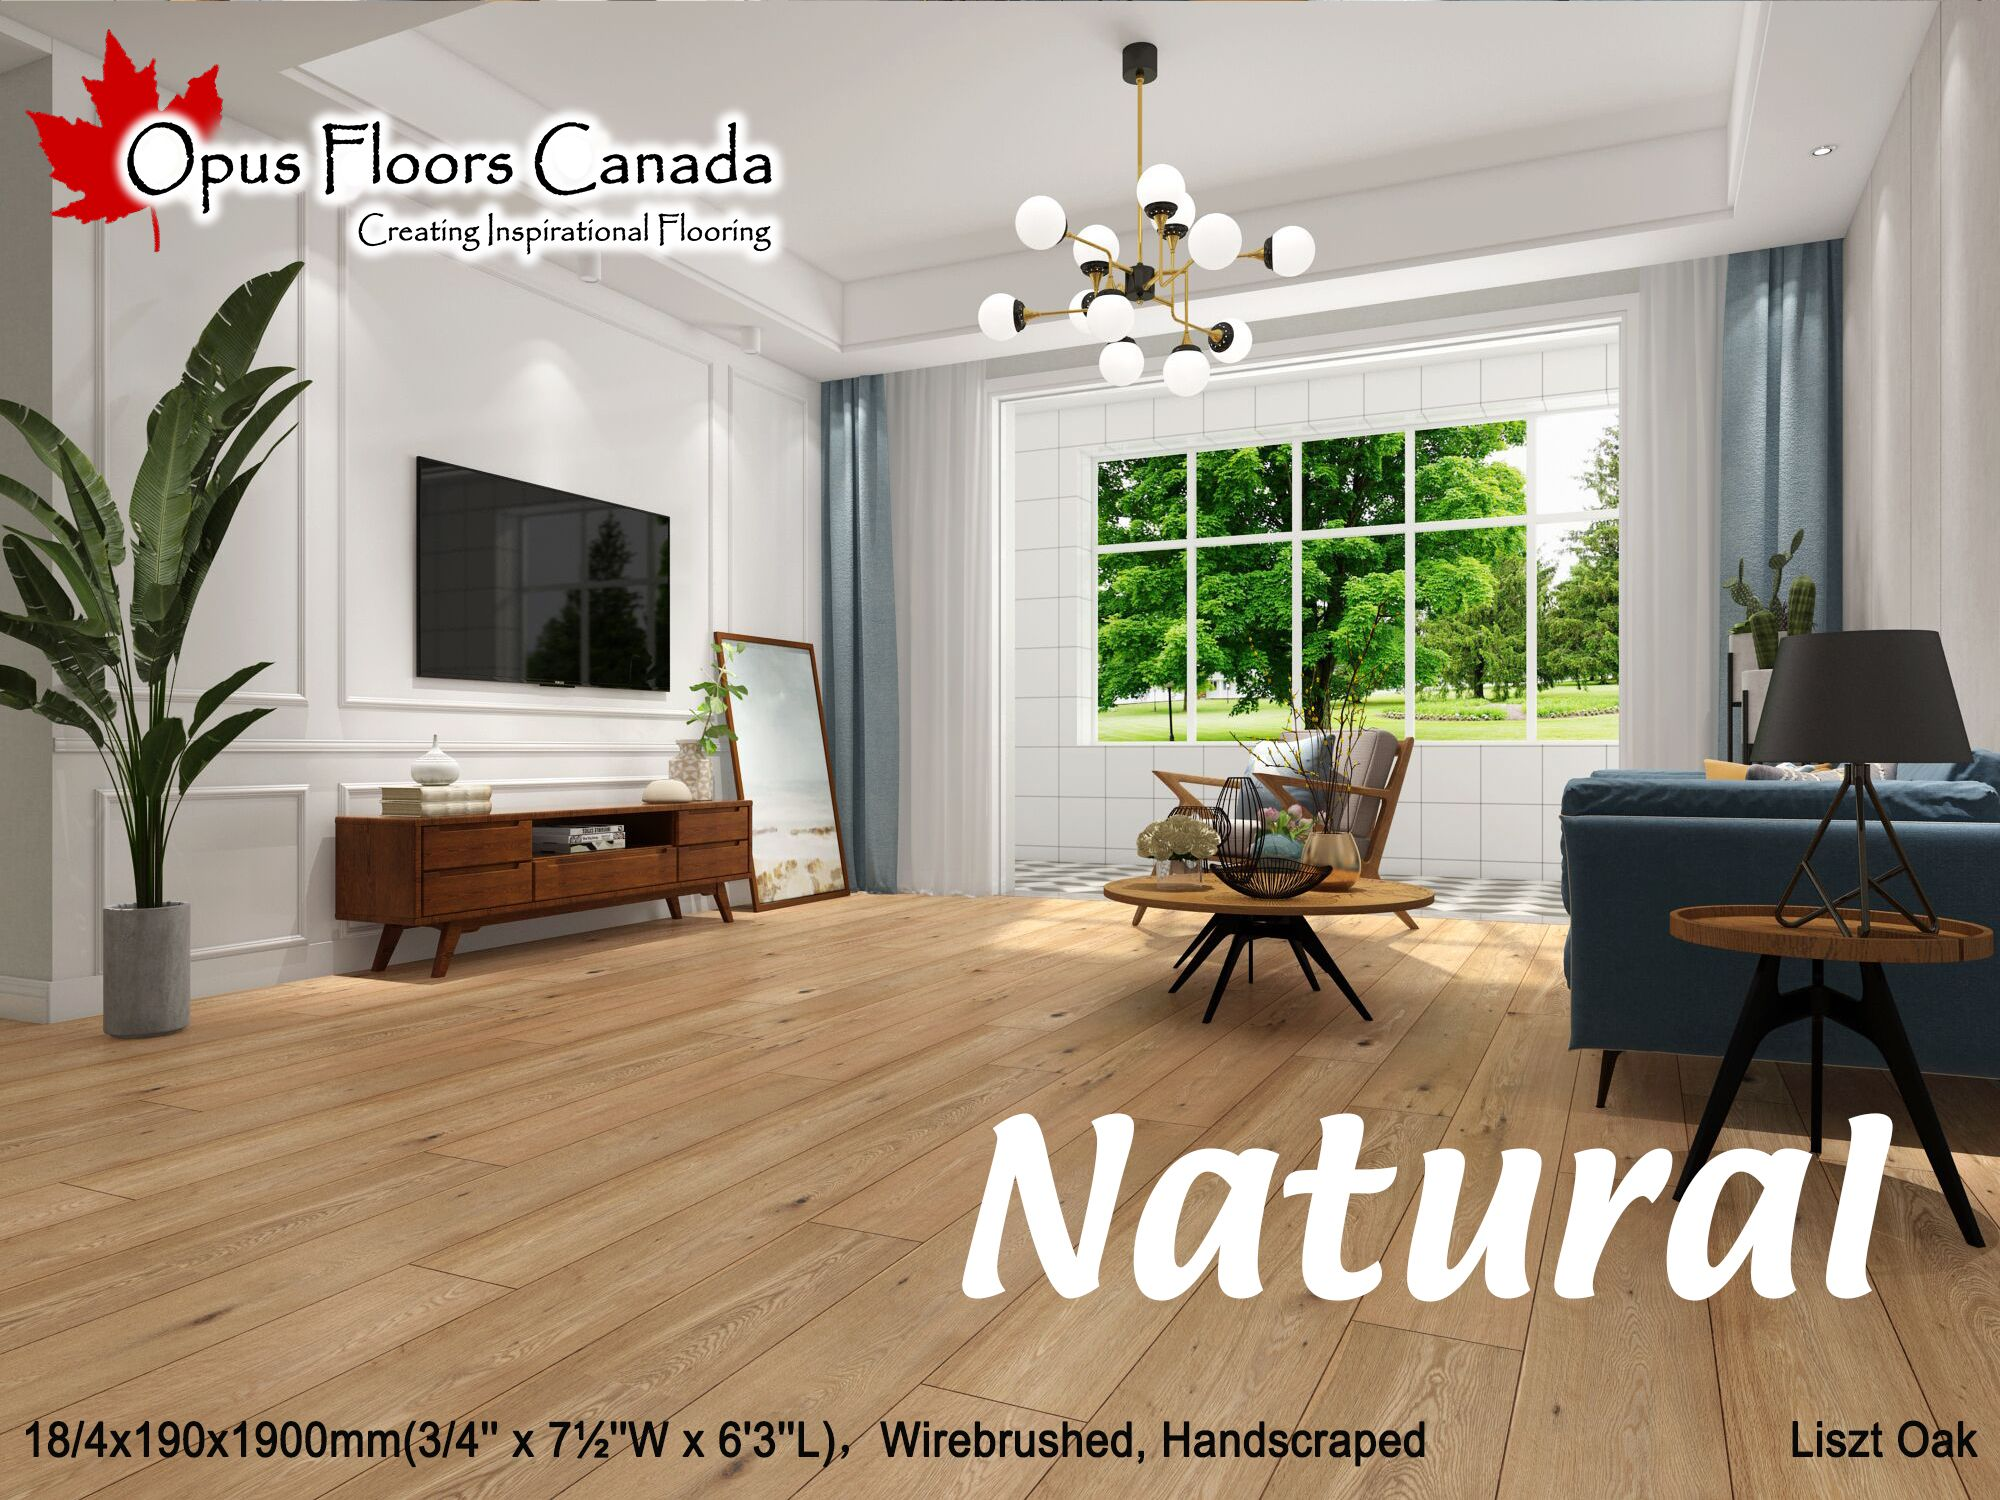 Opus Floors Canada Liszt Oak Beautiful Natural Oiled